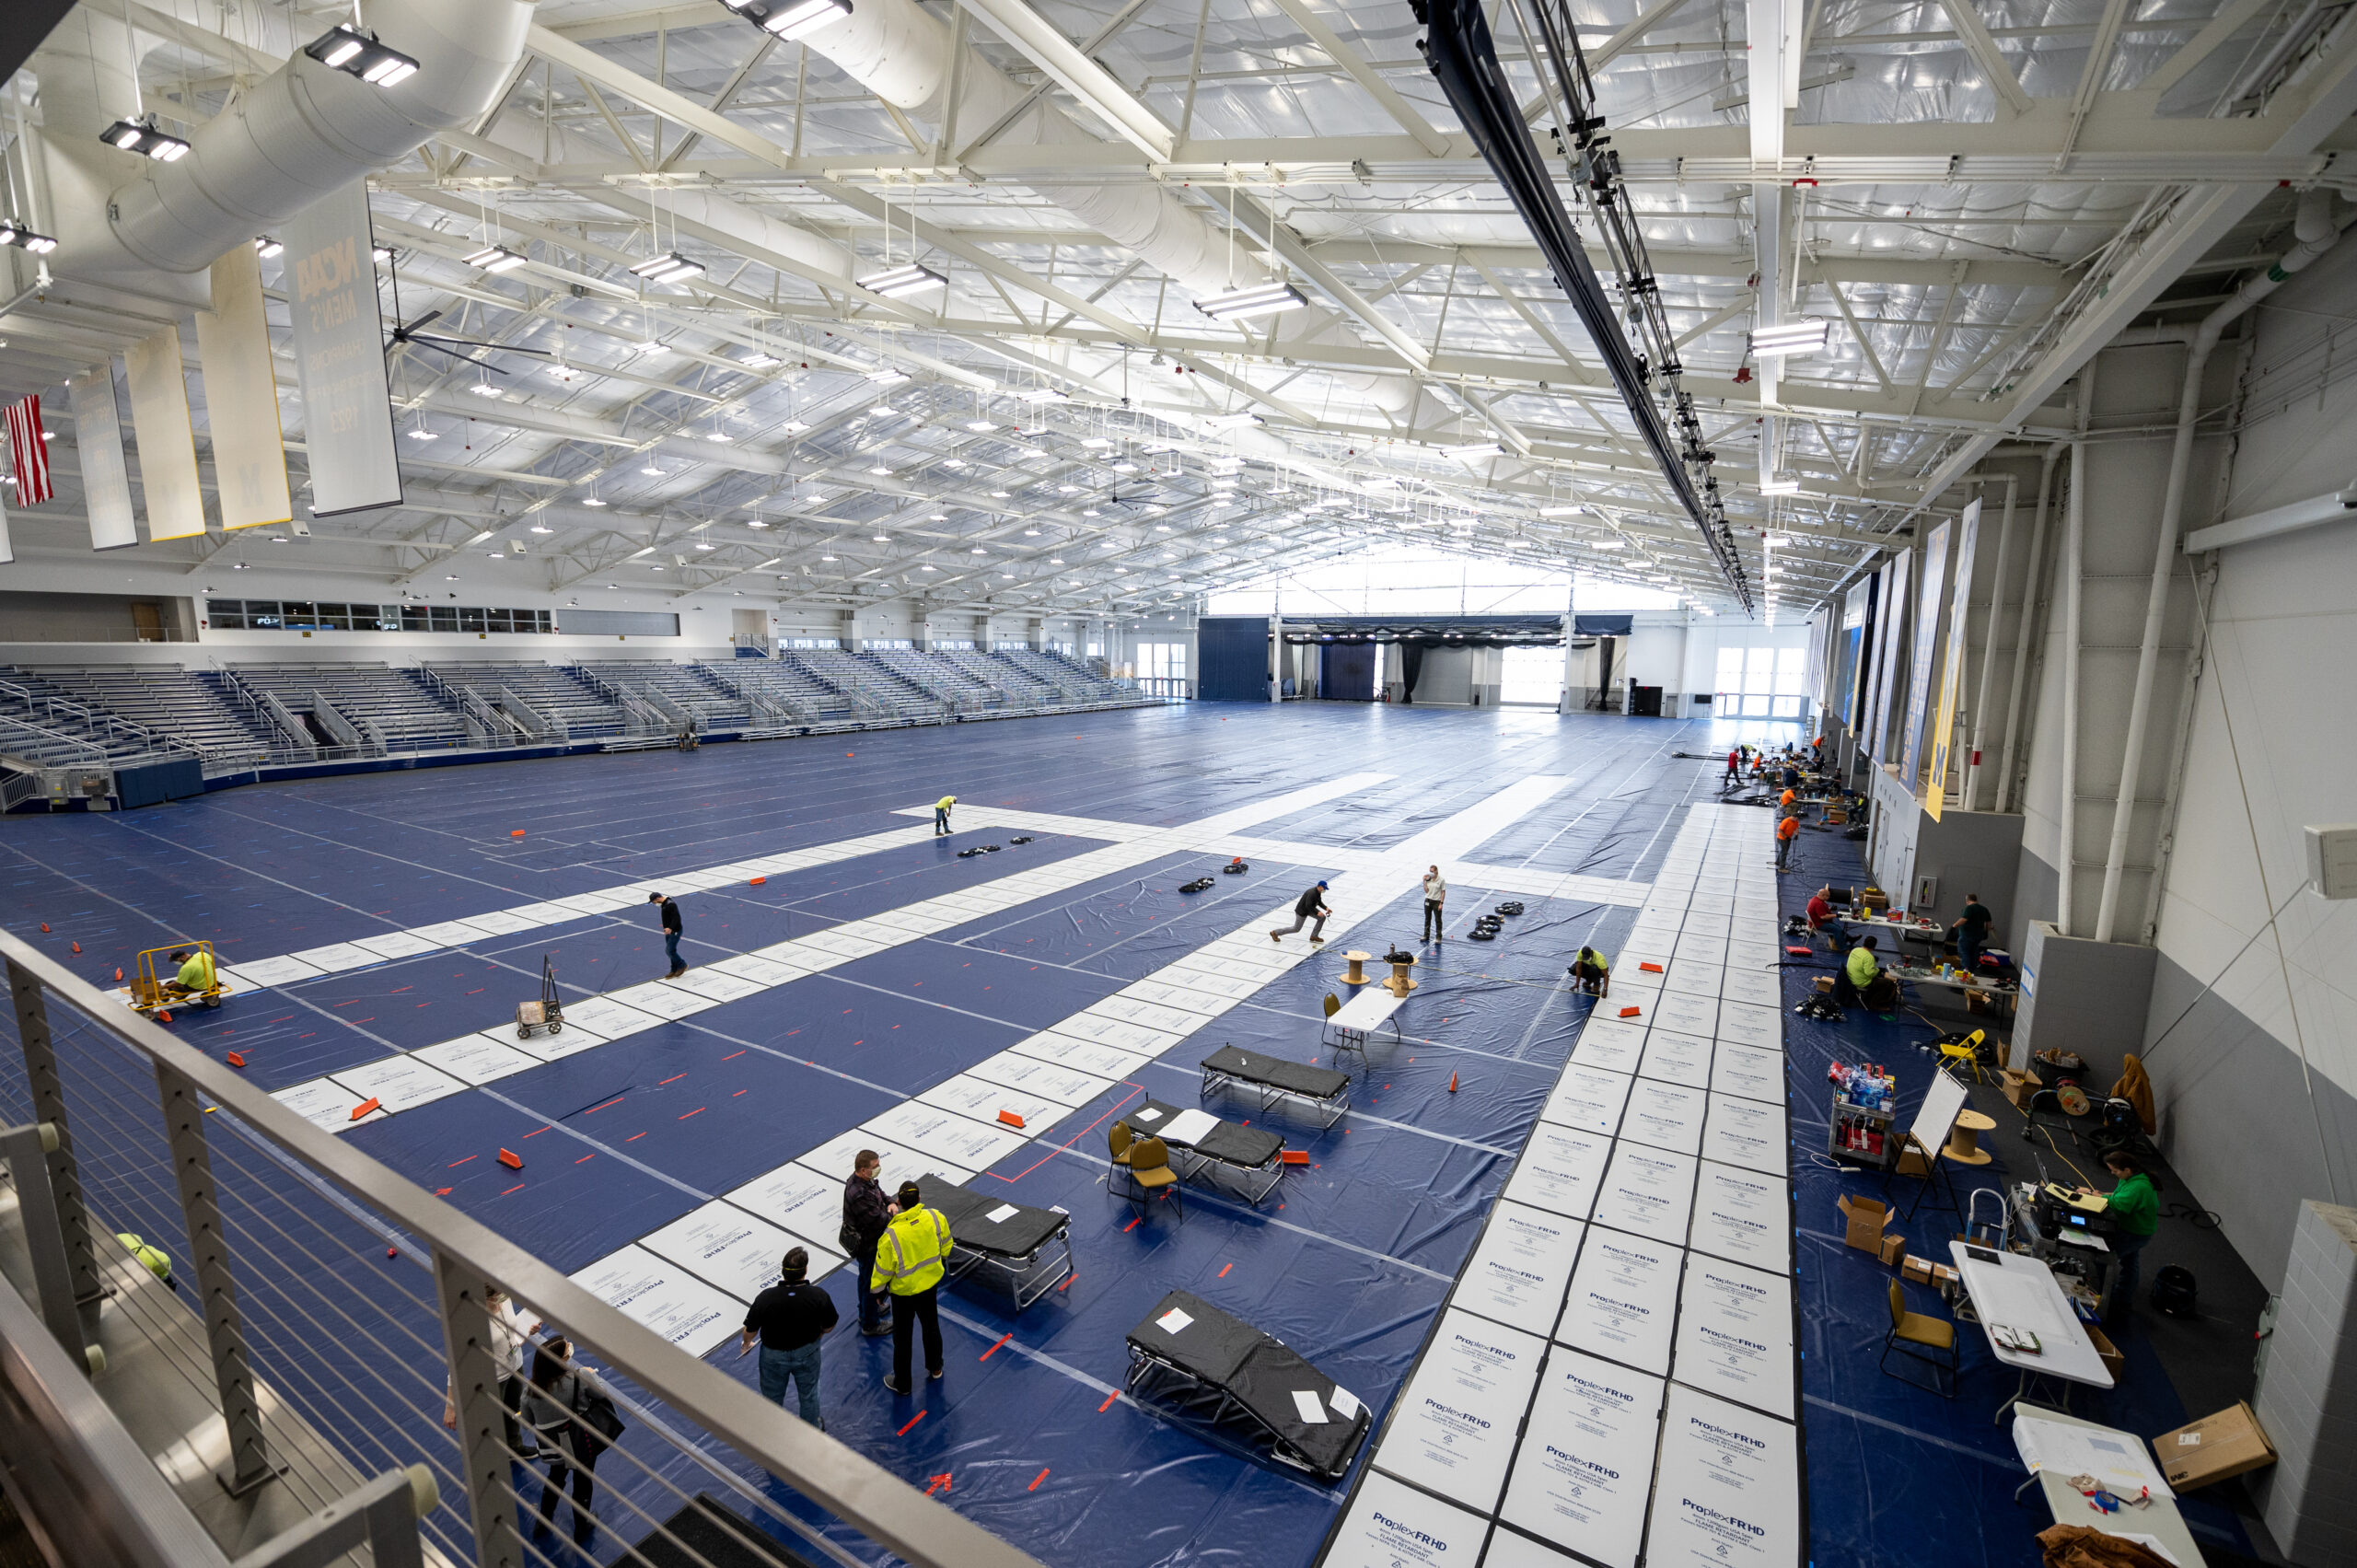 U-M Indoor Track Building at the Athletic Campus South Complex being converted into a field hospital by Michigan Medicine. Image credit: Michigan Photography